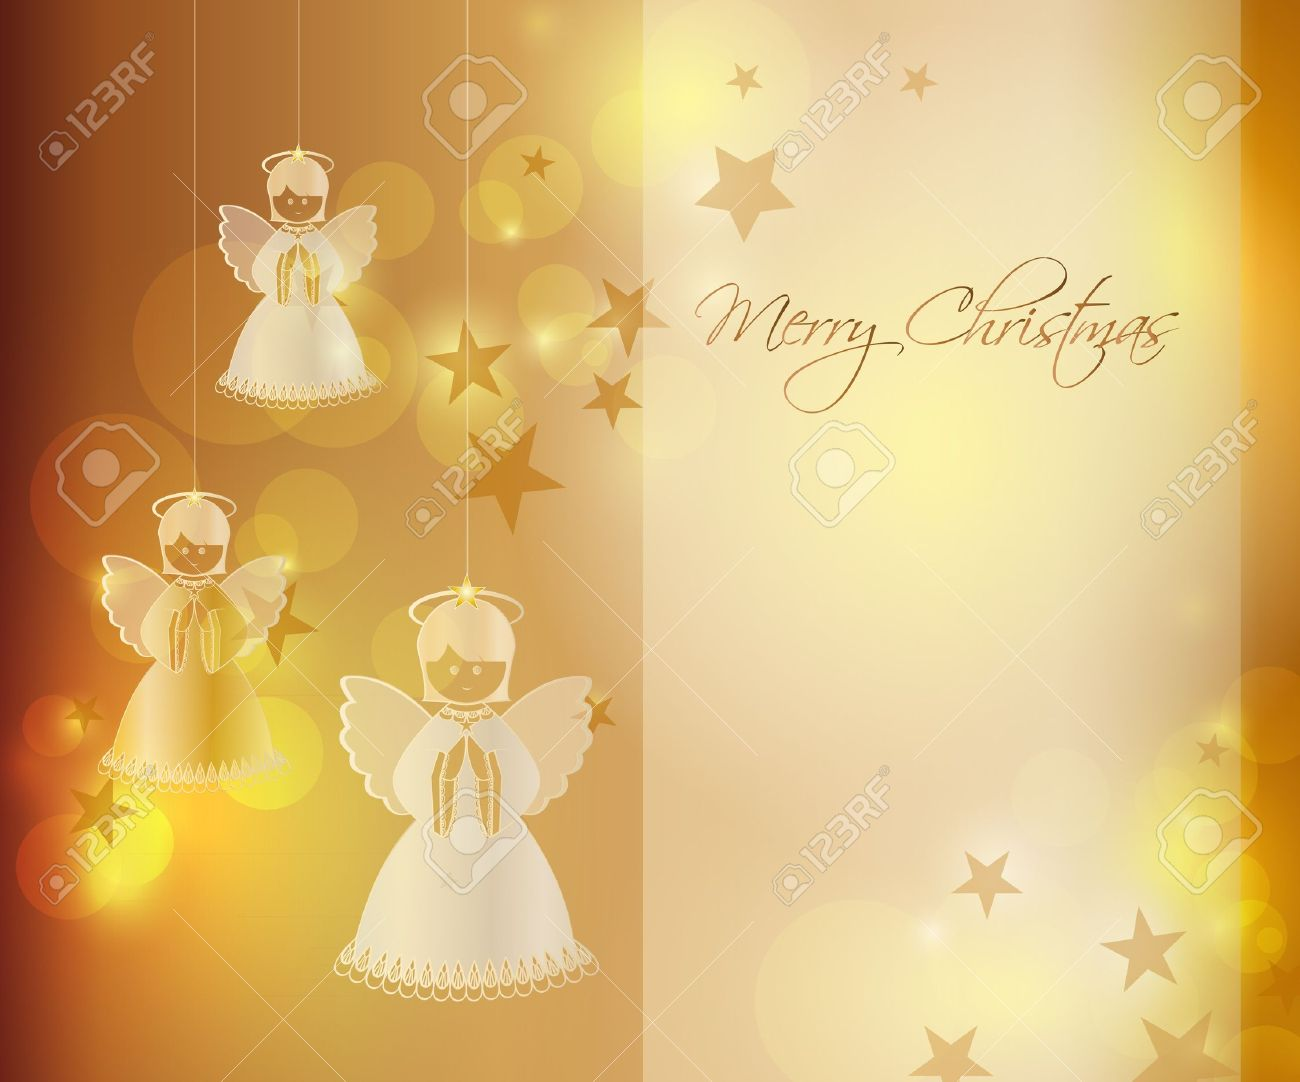 Merry Christmas Background With An Angel Royalty Free Cliparts ...